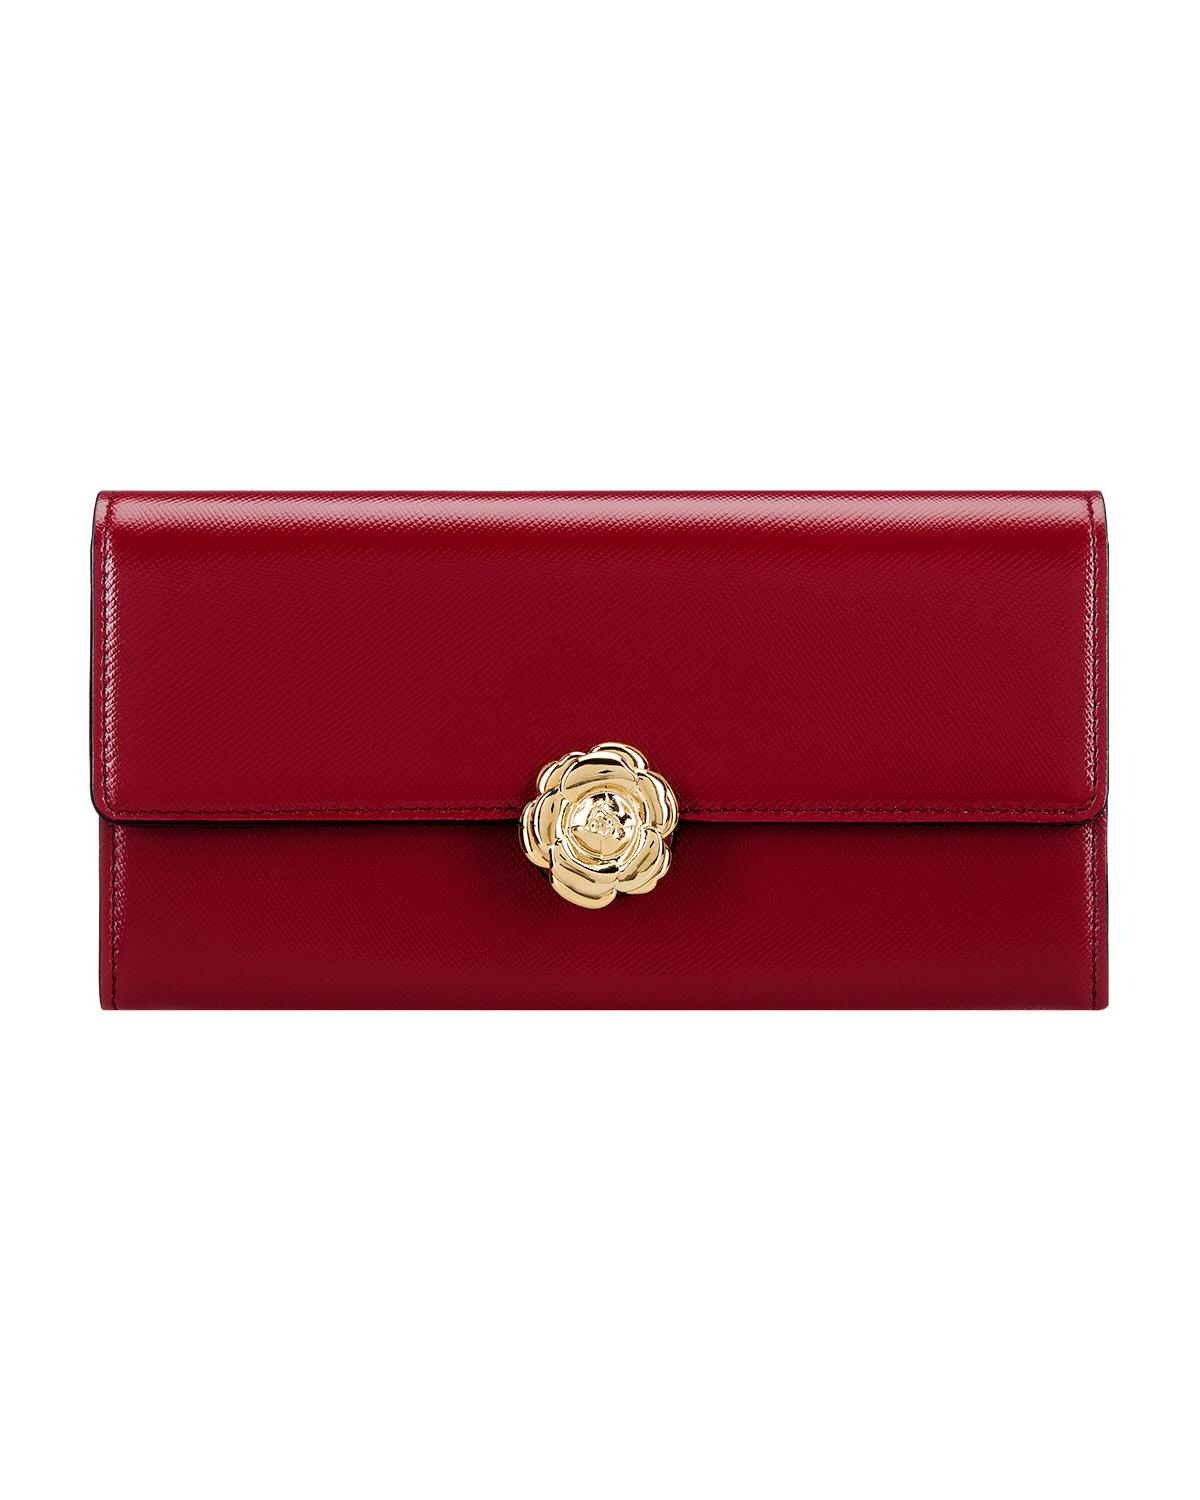 RED CONTINENTAL WALLET